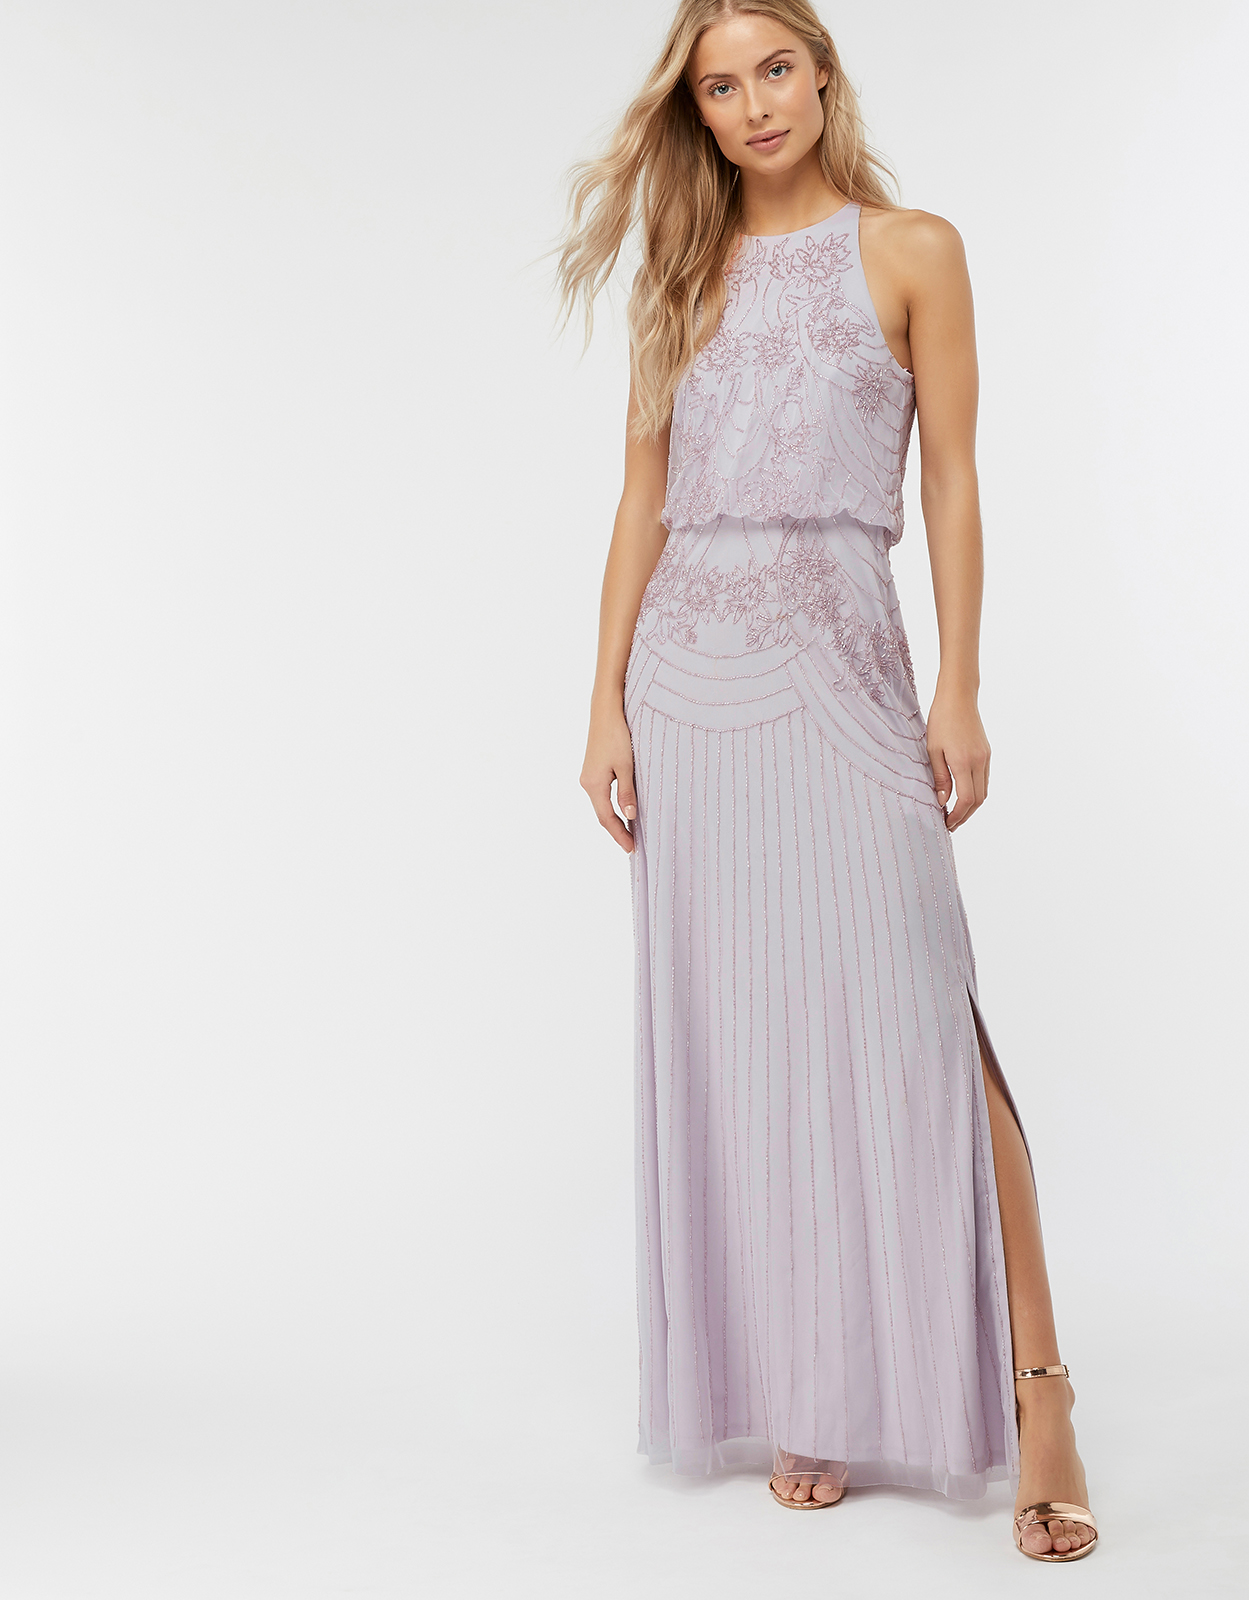 Monsoon Blake Embellished Maxi Bridesmaid Dress